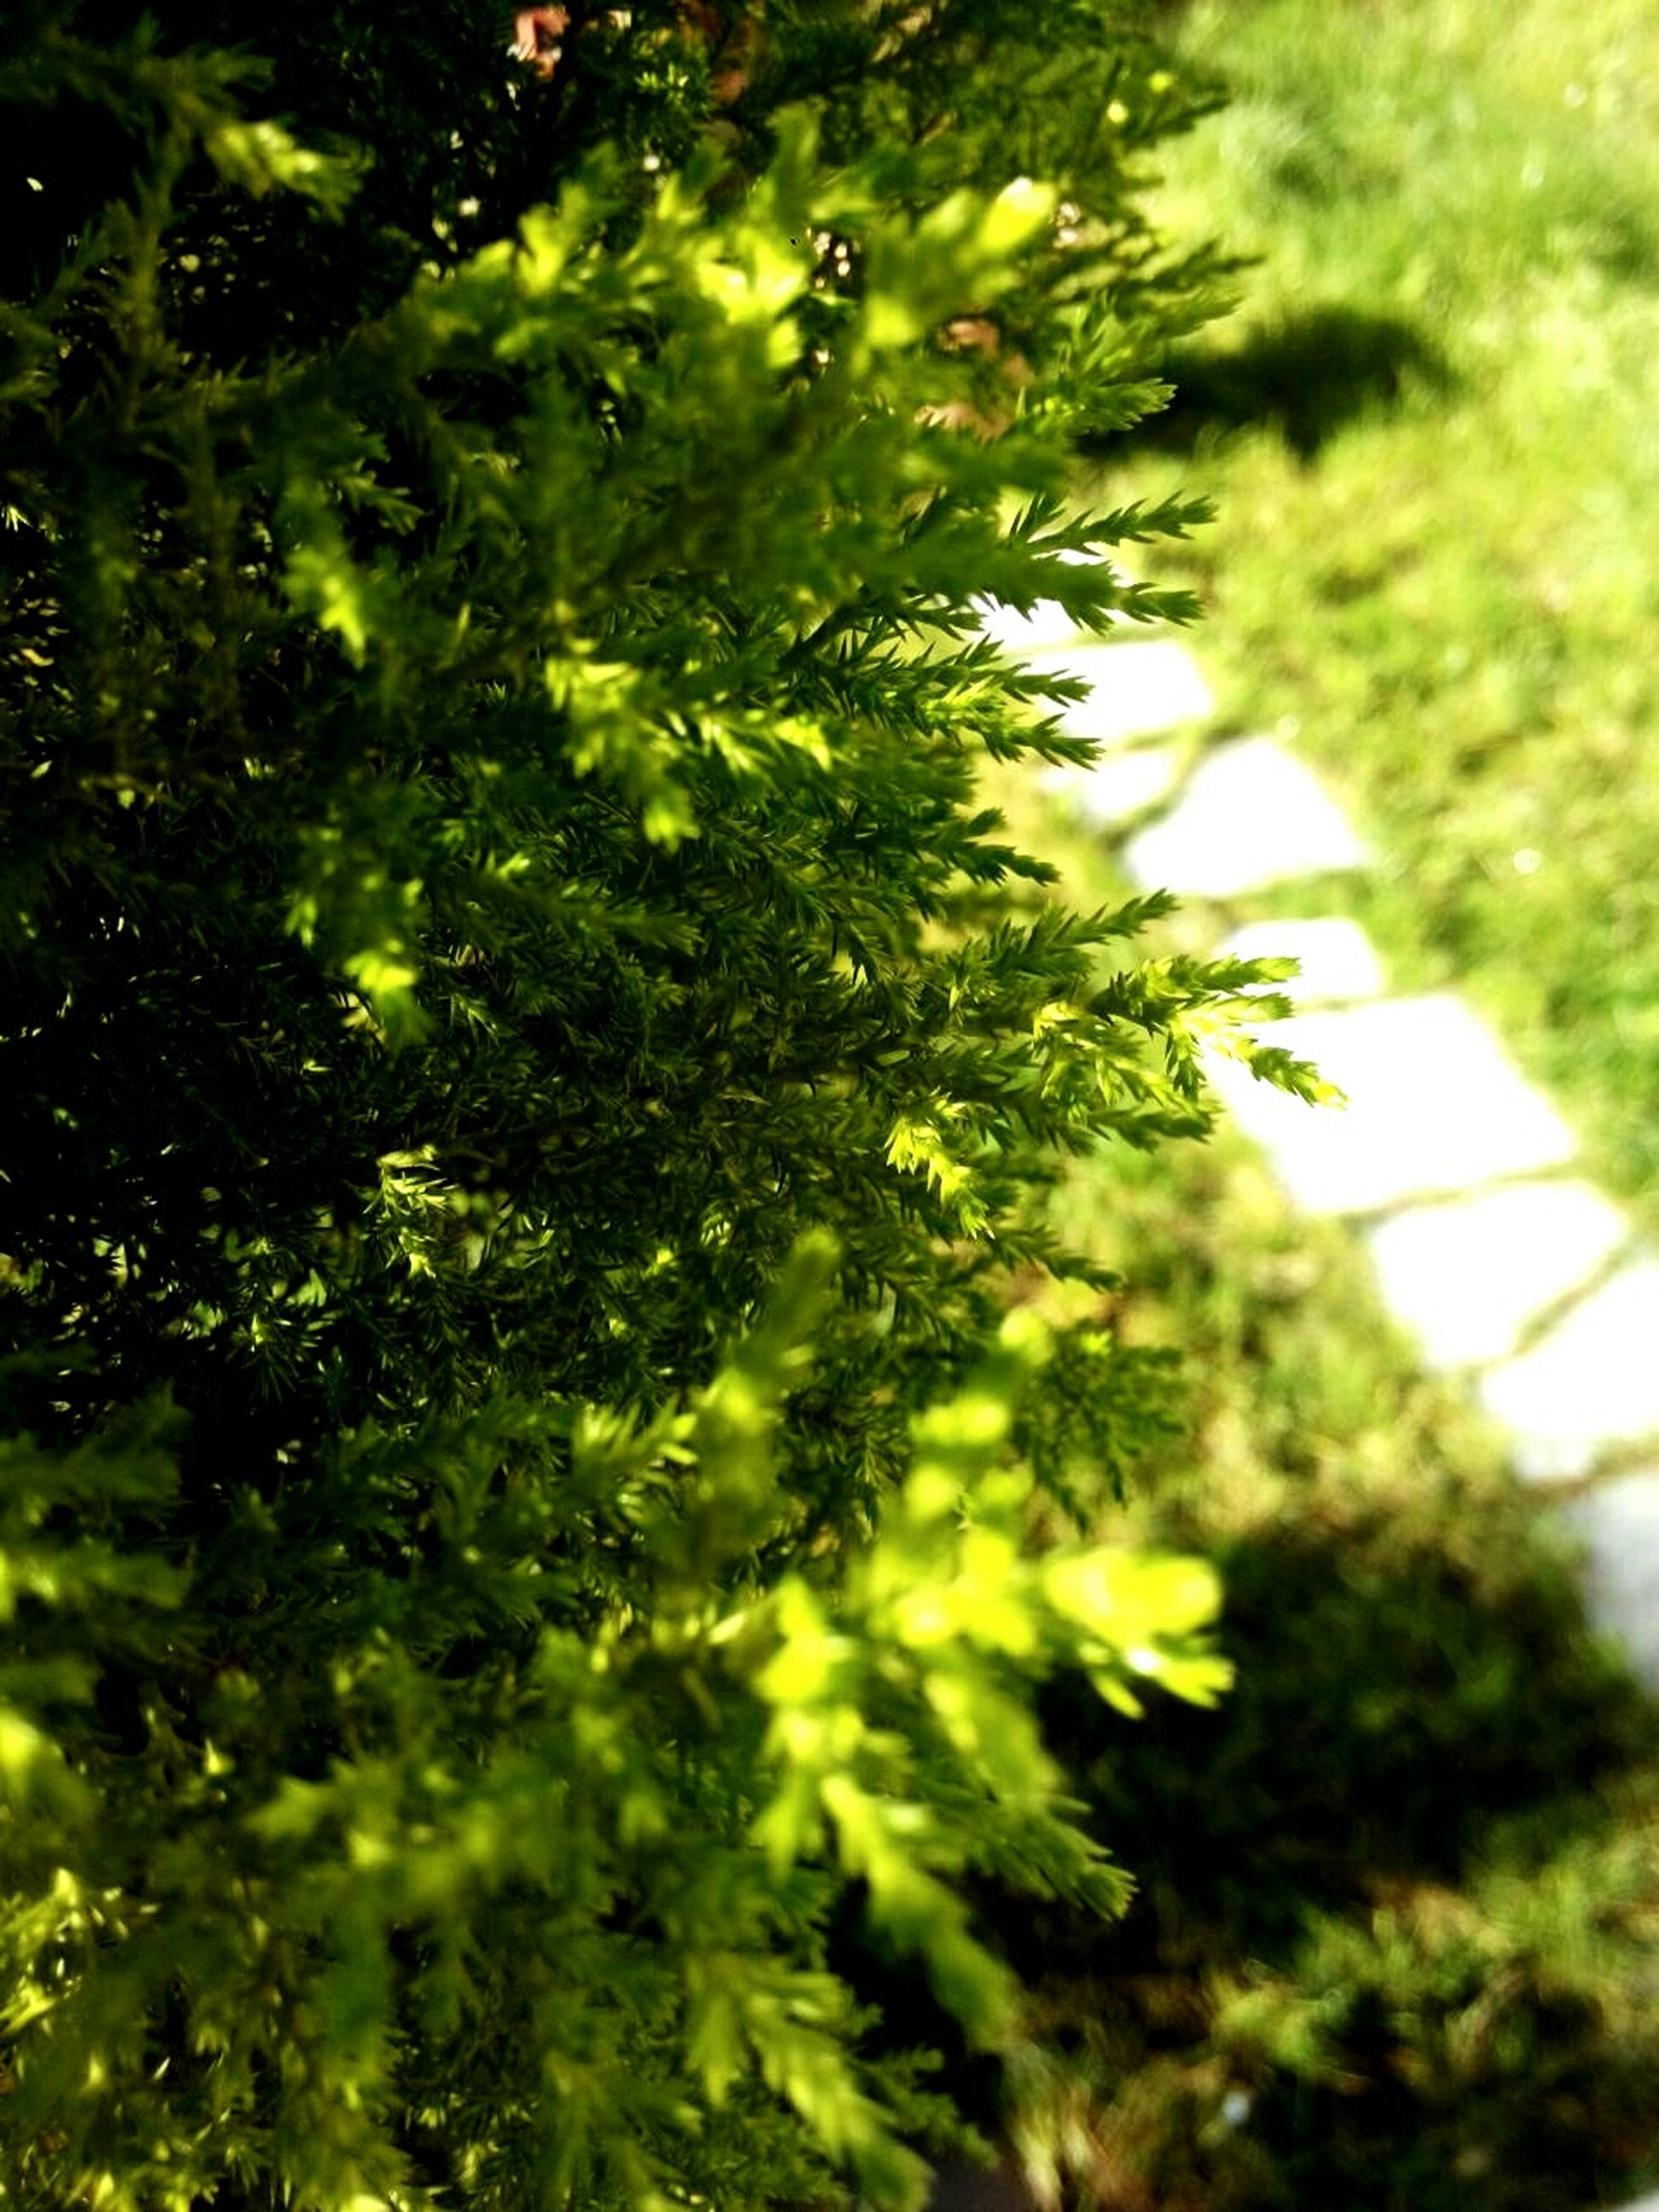 green color, tree, growth, leaf, low angle view, nature, branch, plant, close-up, green, day, sunlight, selective focus, no people, lush foliage, outdoors, beauty in nature, tranquility, focus on foreground, growing